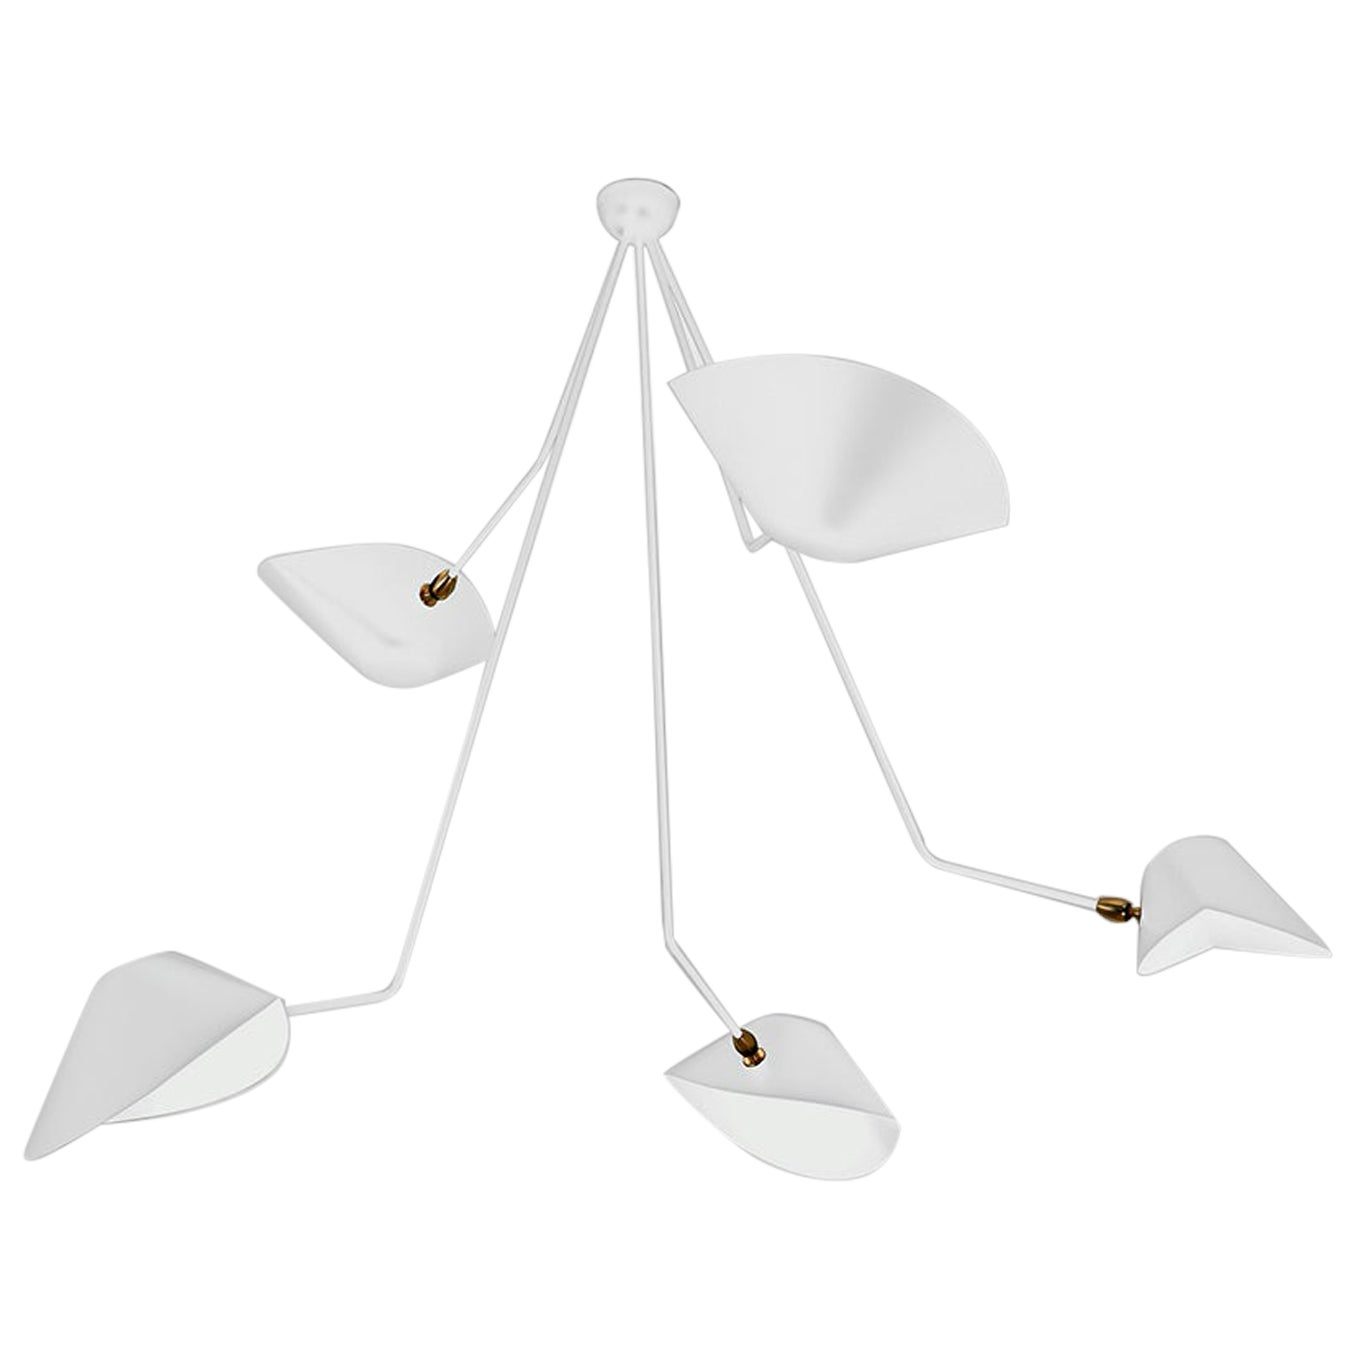 Serge Mouille Modern White Five Curved Fixed Arms Spider Ceiling Lamp